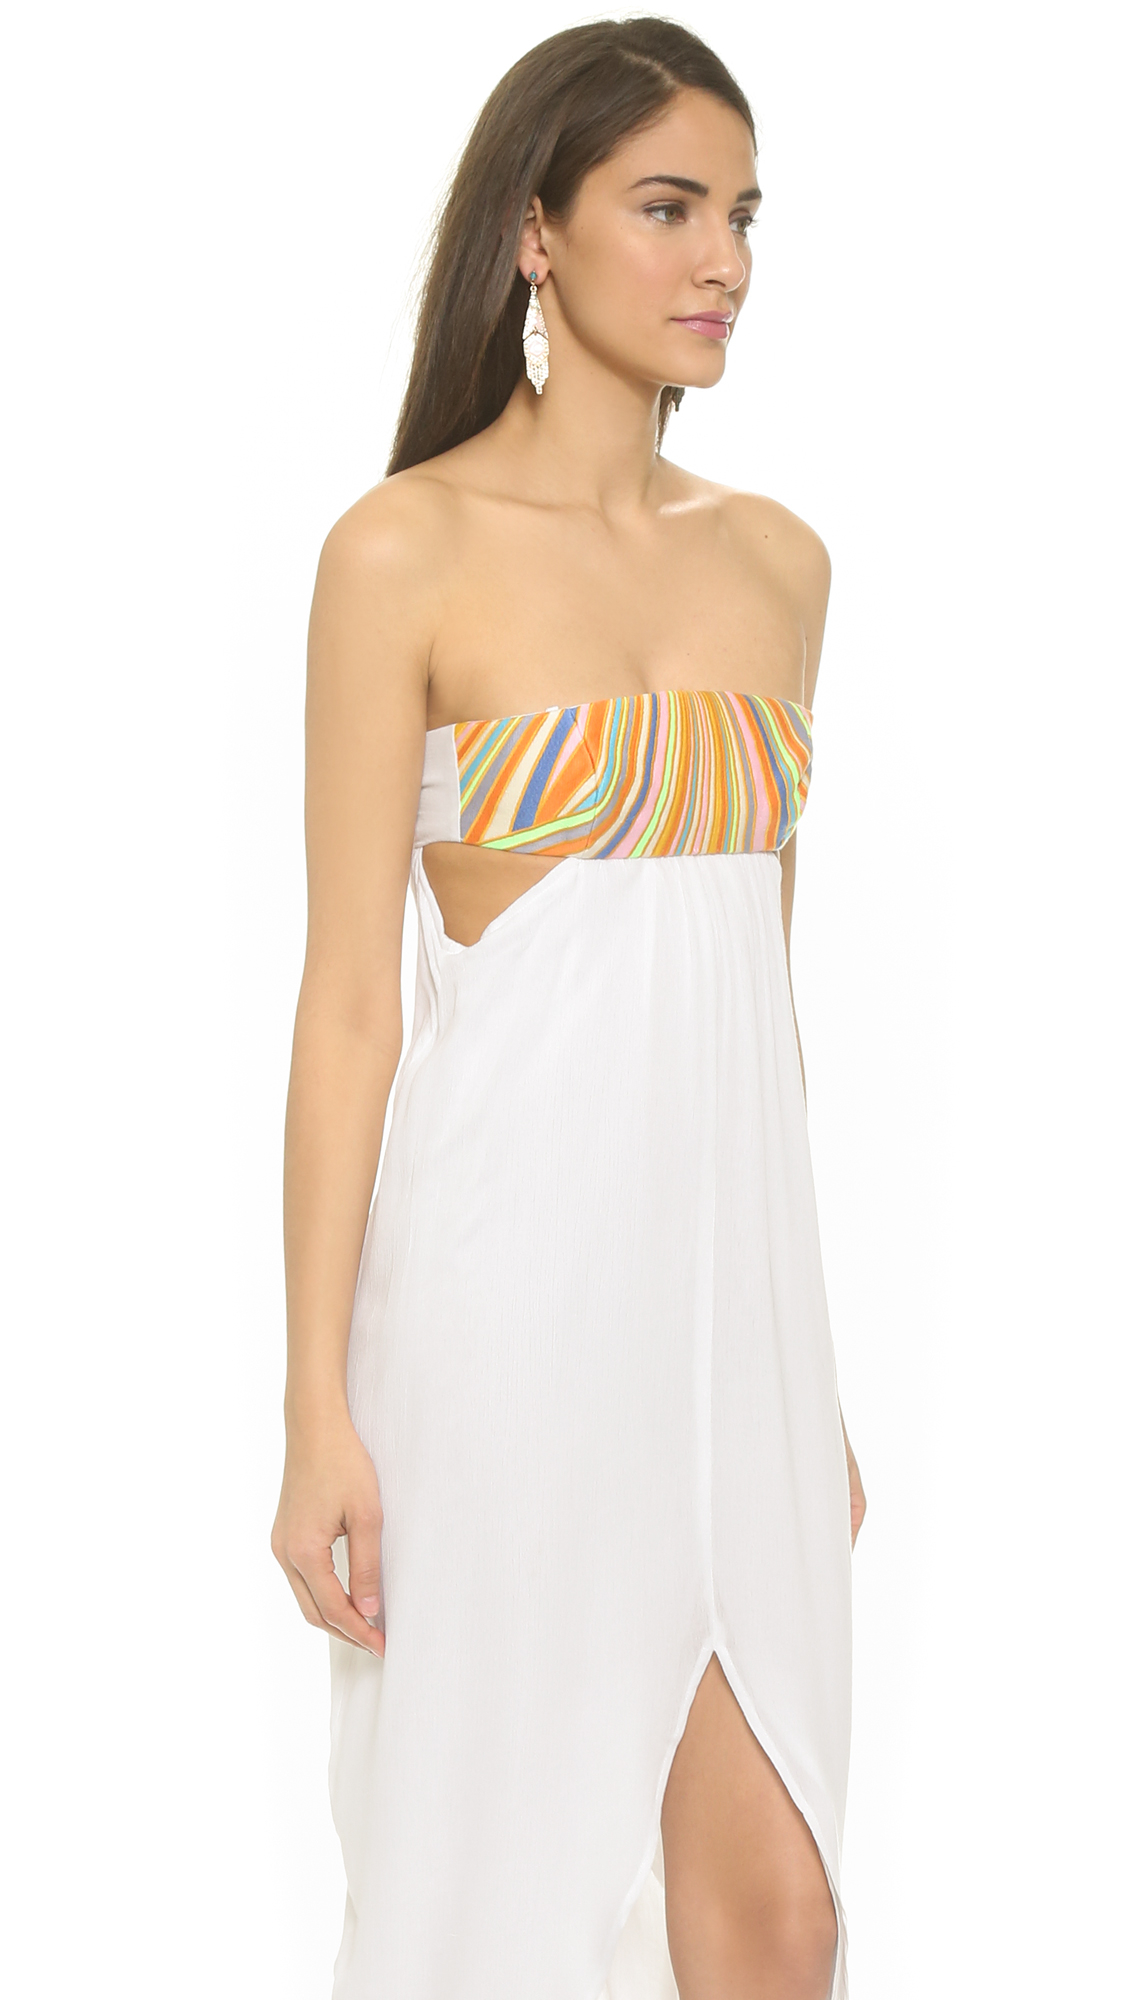 Mara hoffman beach embroidered maxi dress white in